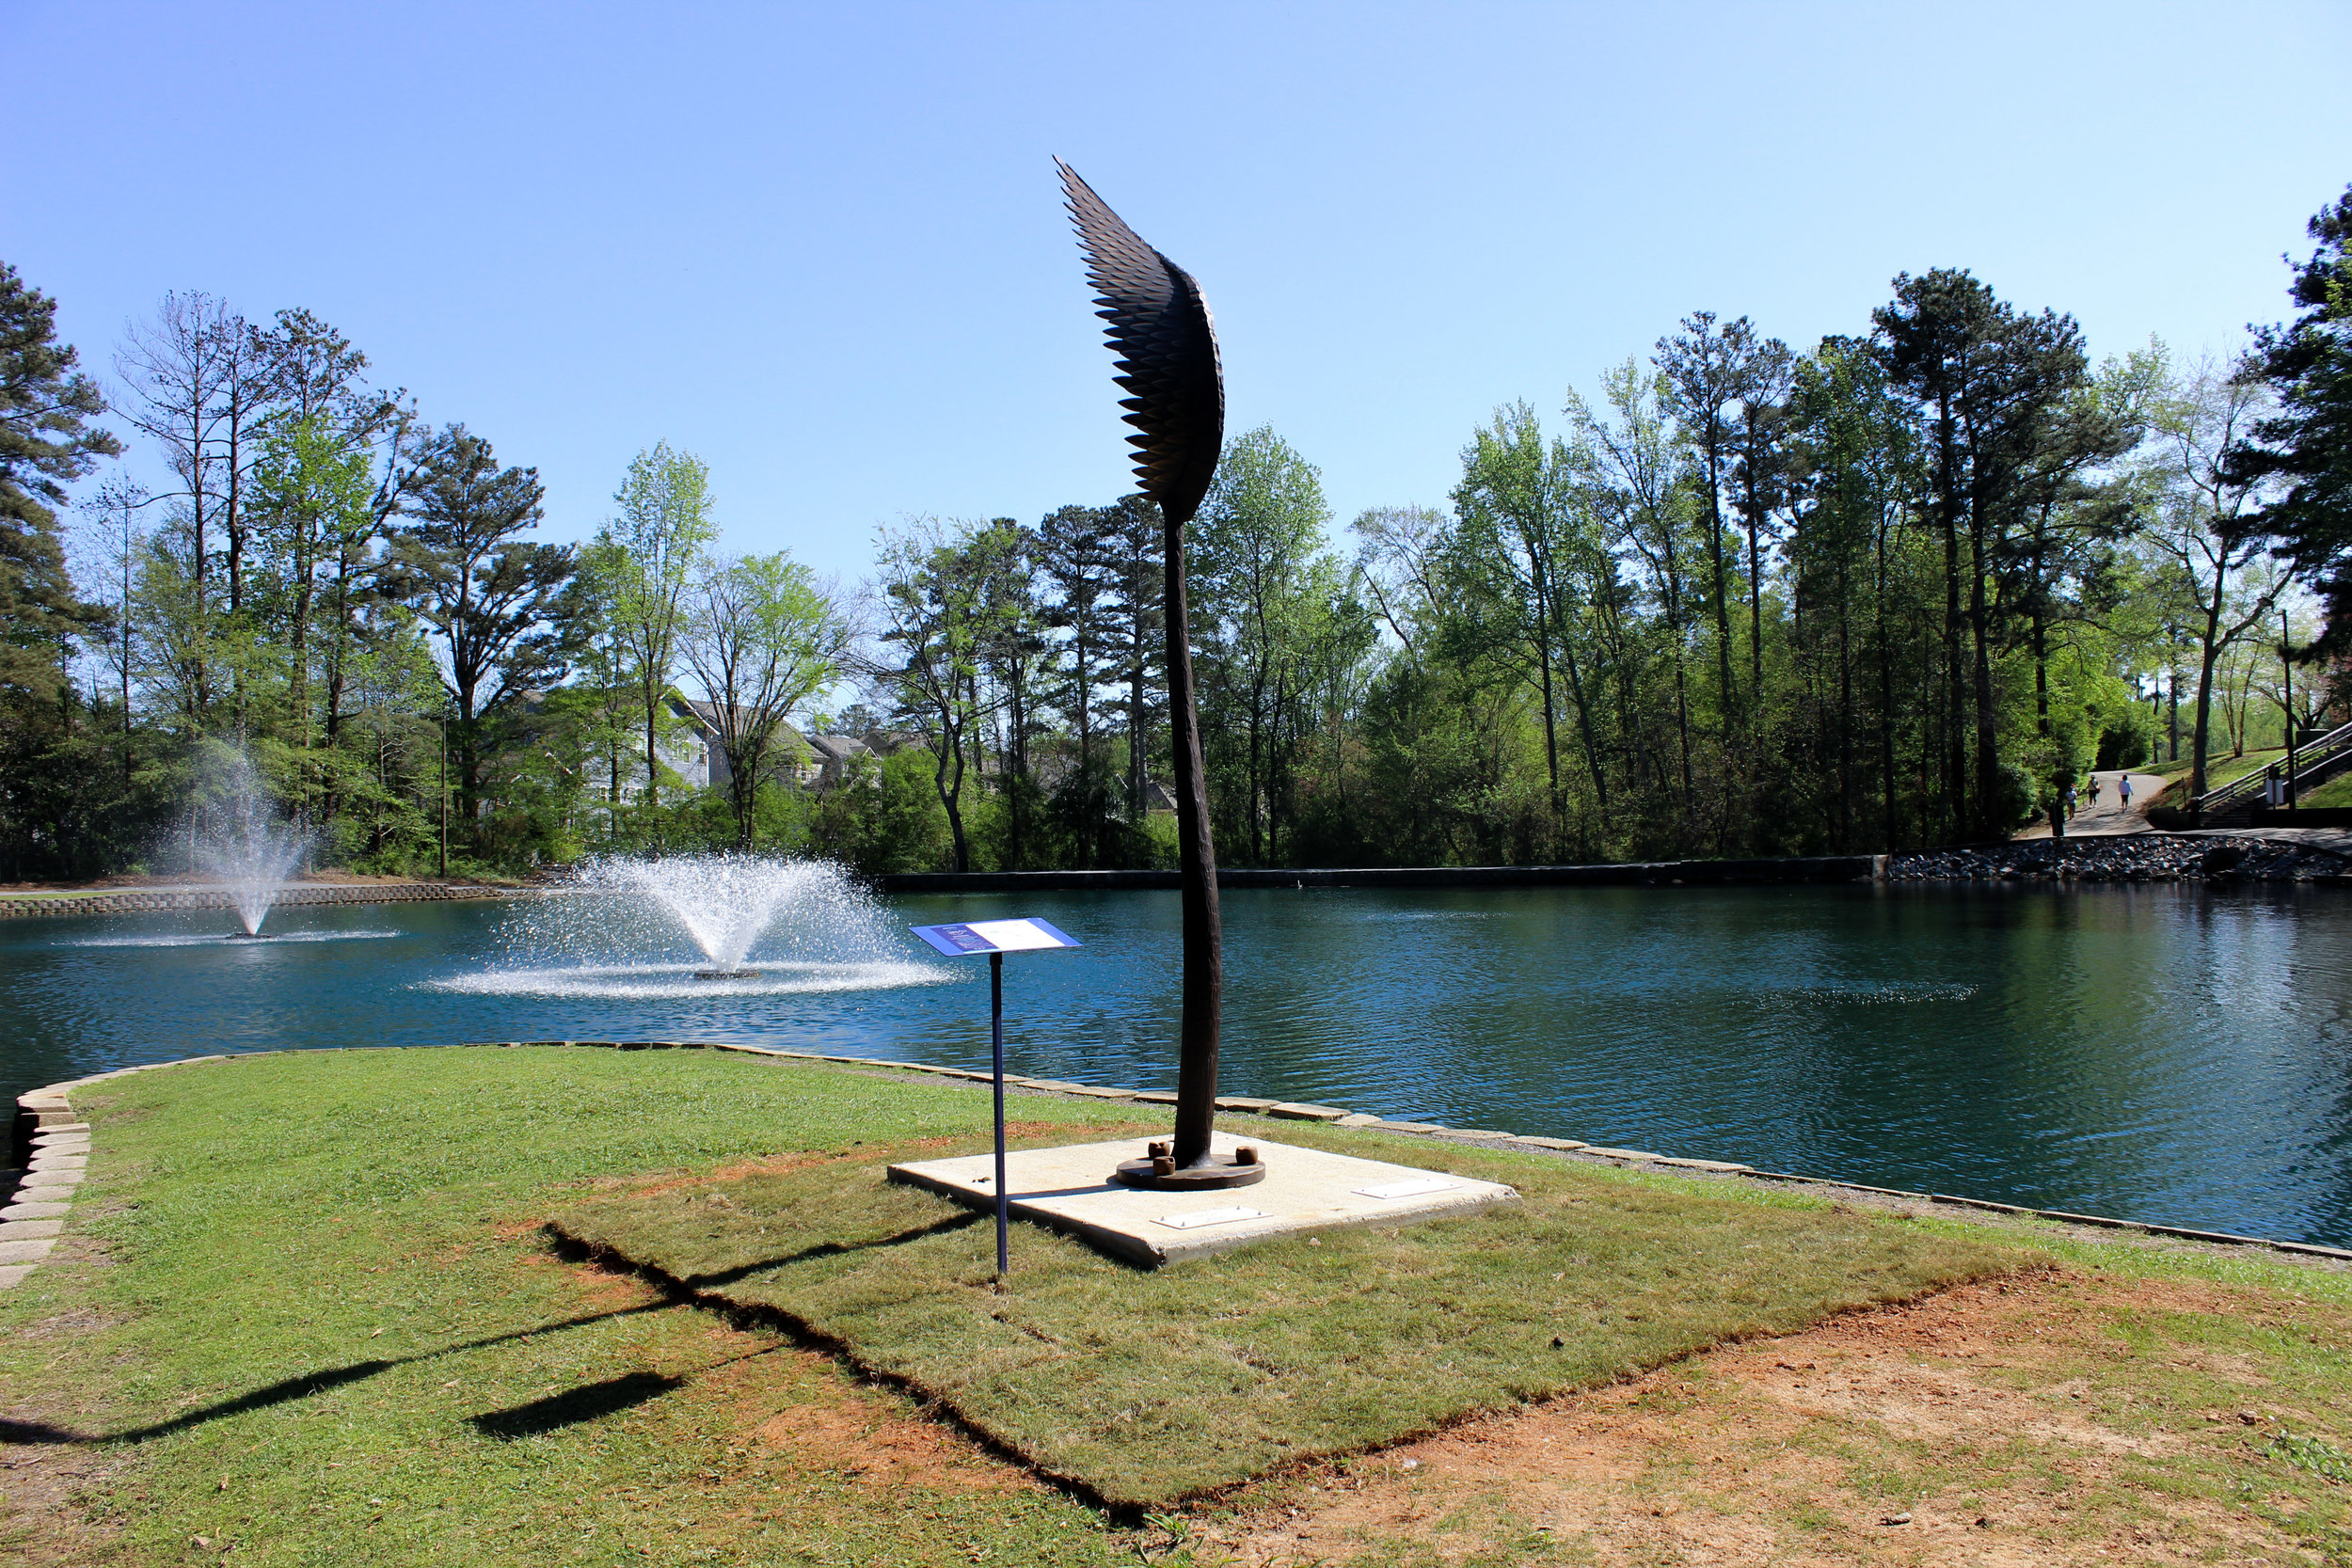 Avian-21 roswell 2016 sculp tour.jpg